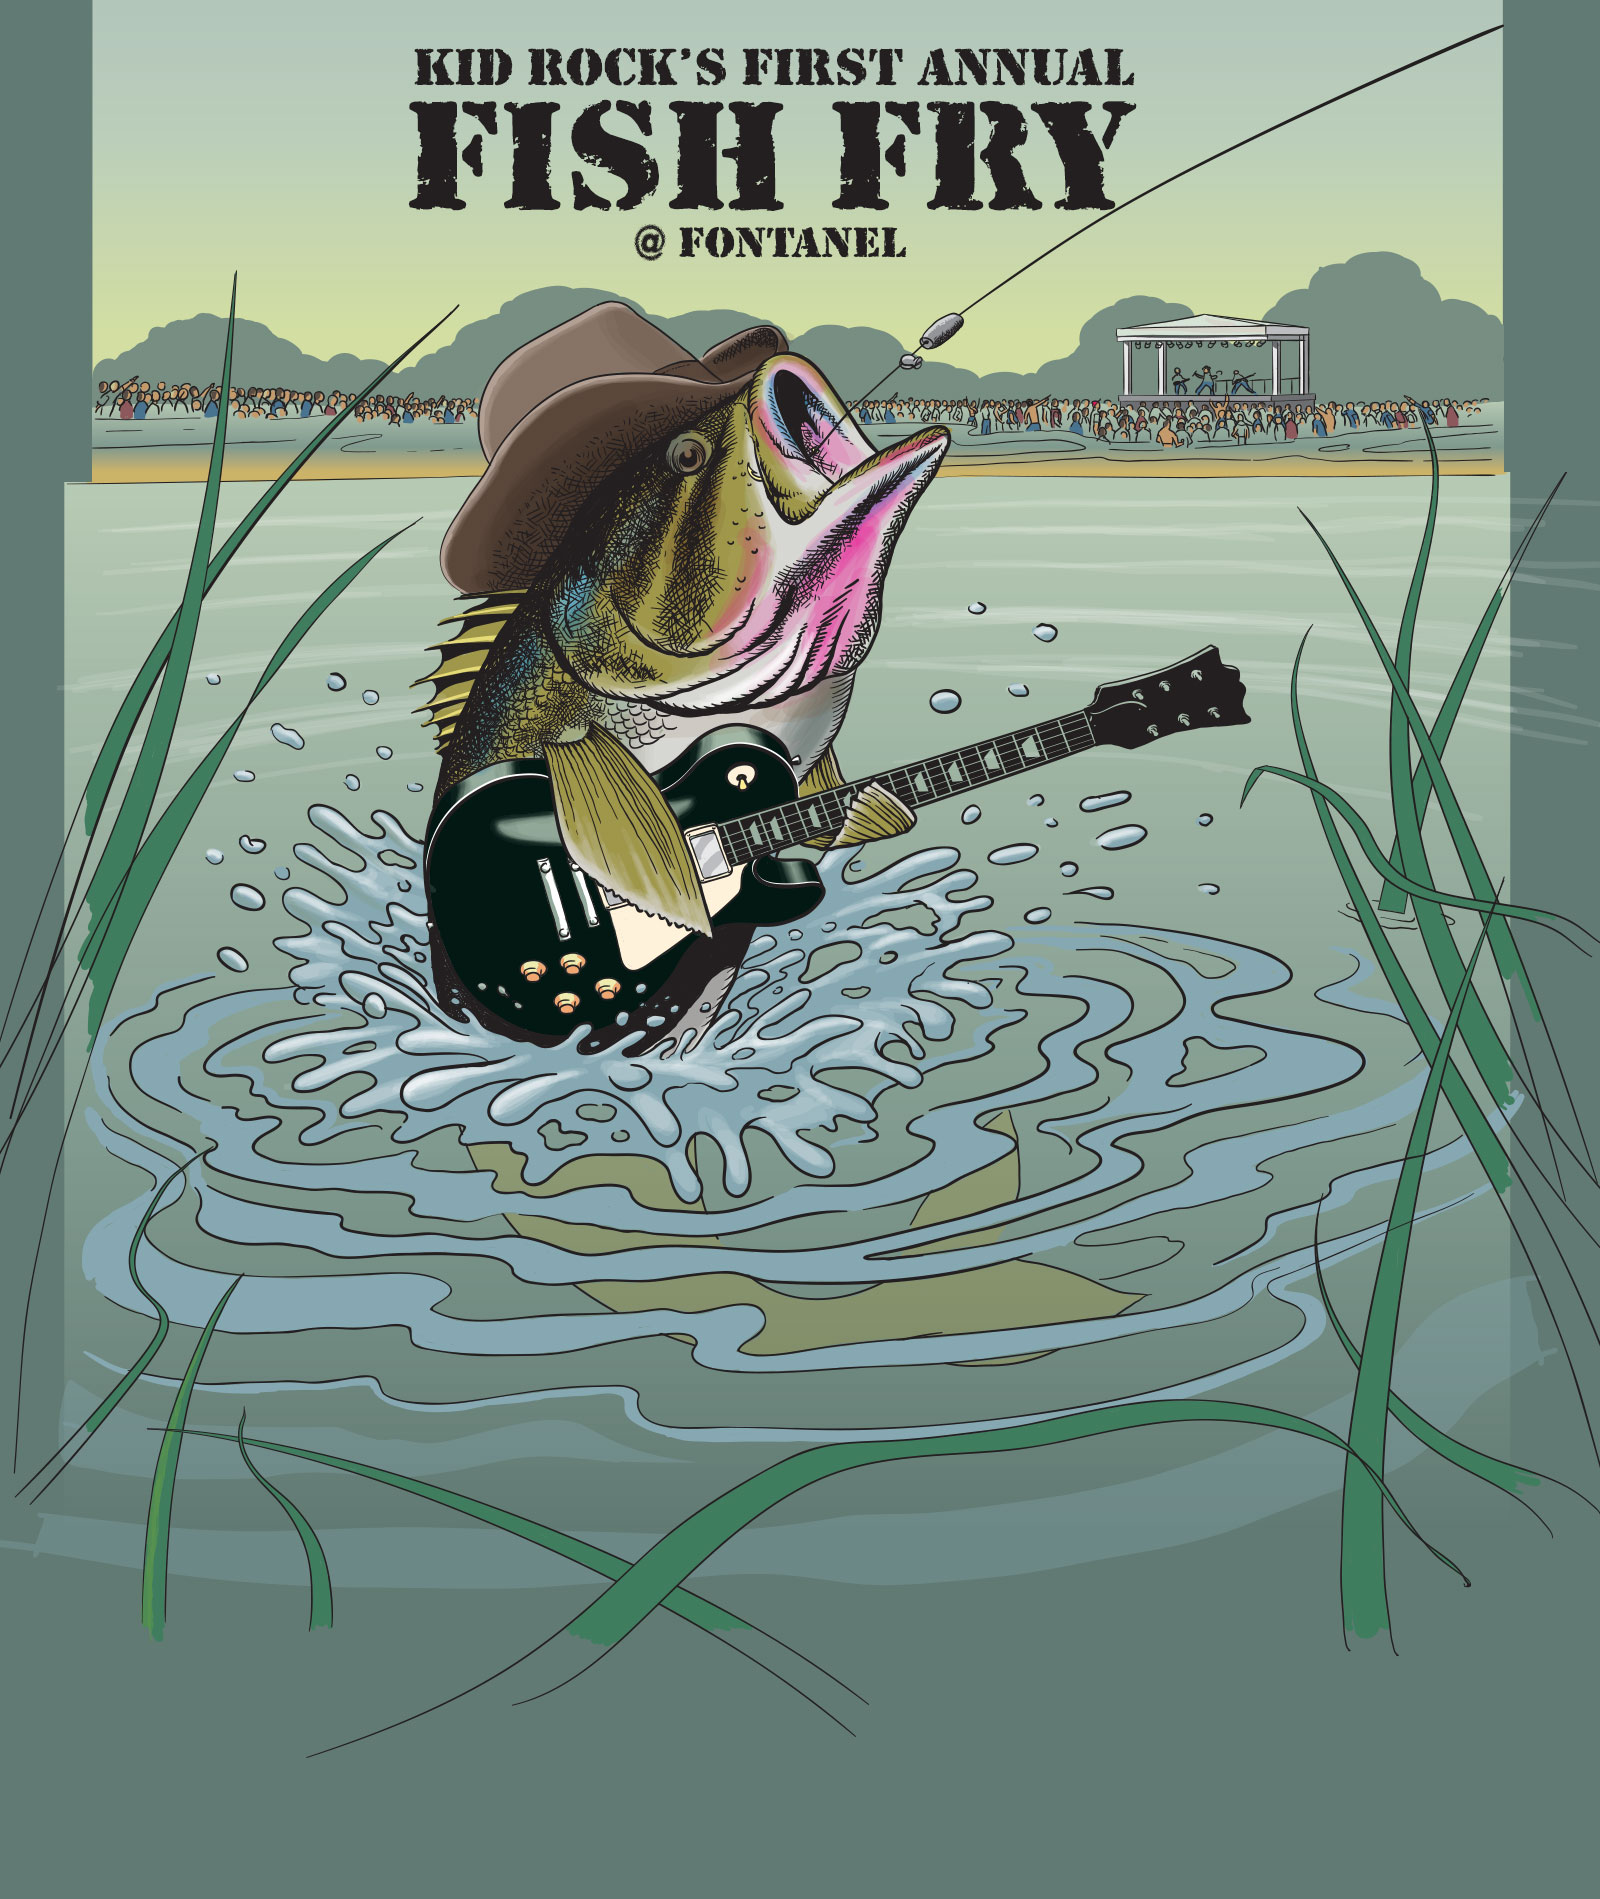 Kid Rock's 1st Annual Fish Fry at Fontanel